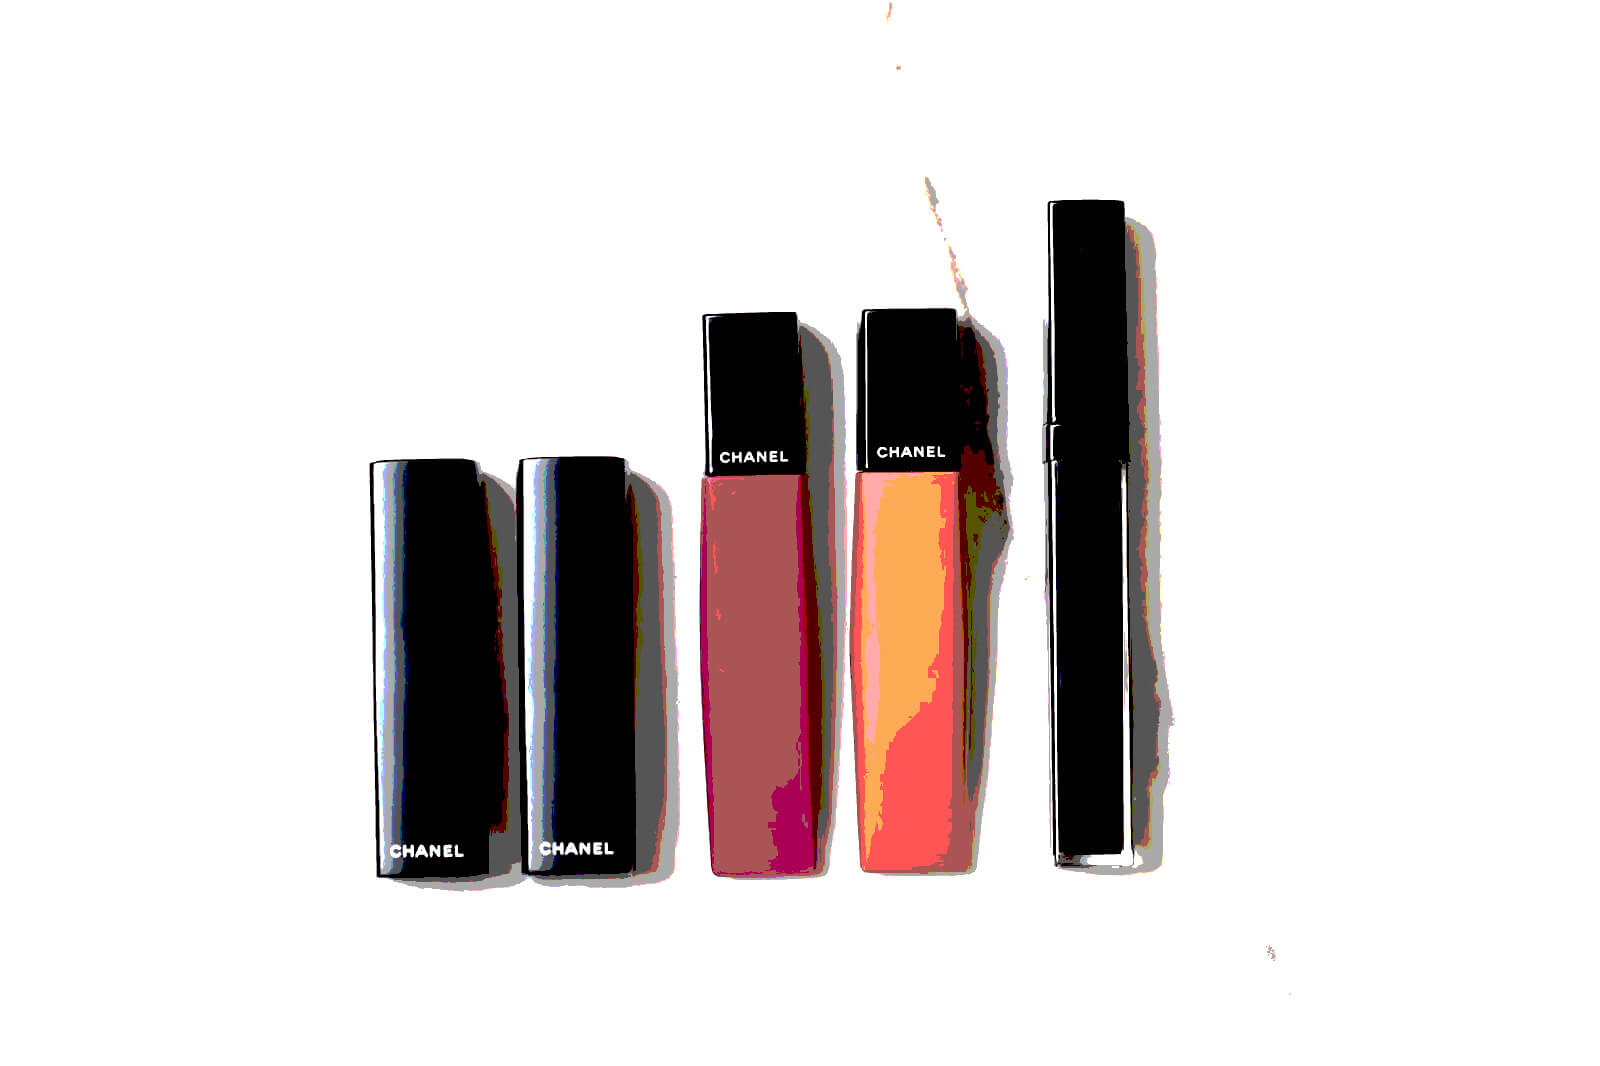 chanel-rouge-allure-velvet-extreme-130-128-978-974-rouge-coco-gloss-816-avis-test-swatch-swatches